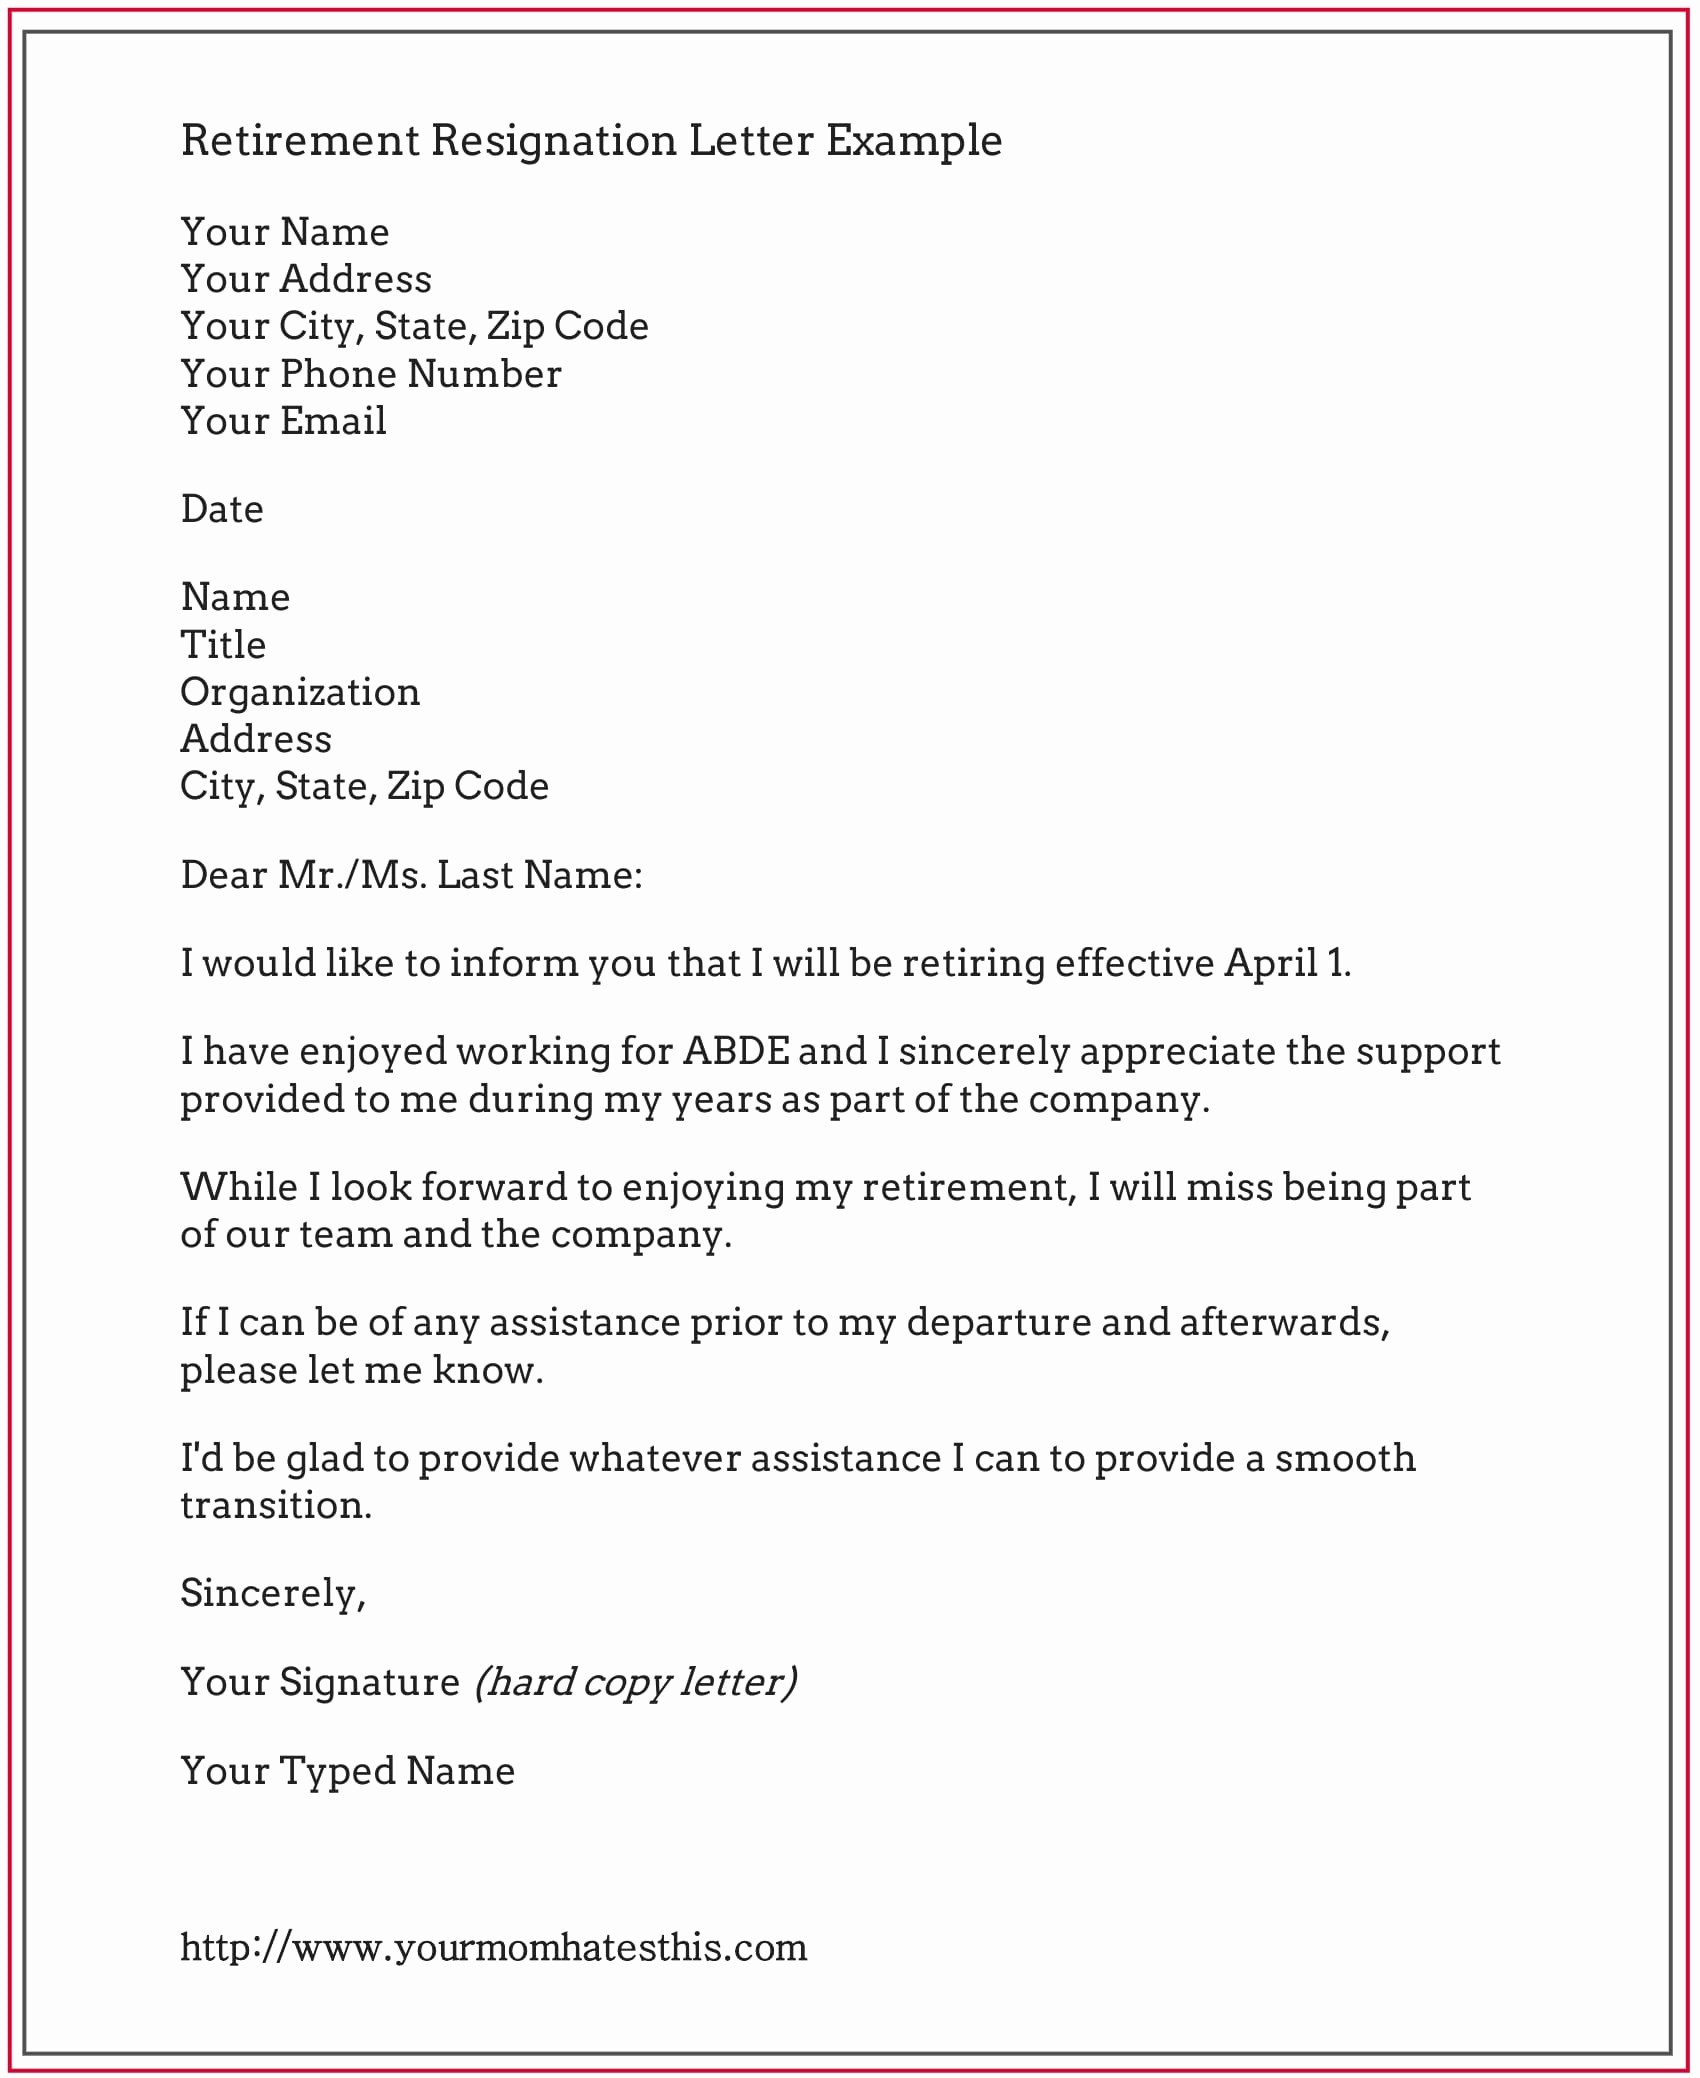 Retirement Letter Of Resignation Sample New Dos and Don'ts for A Resignation Letter